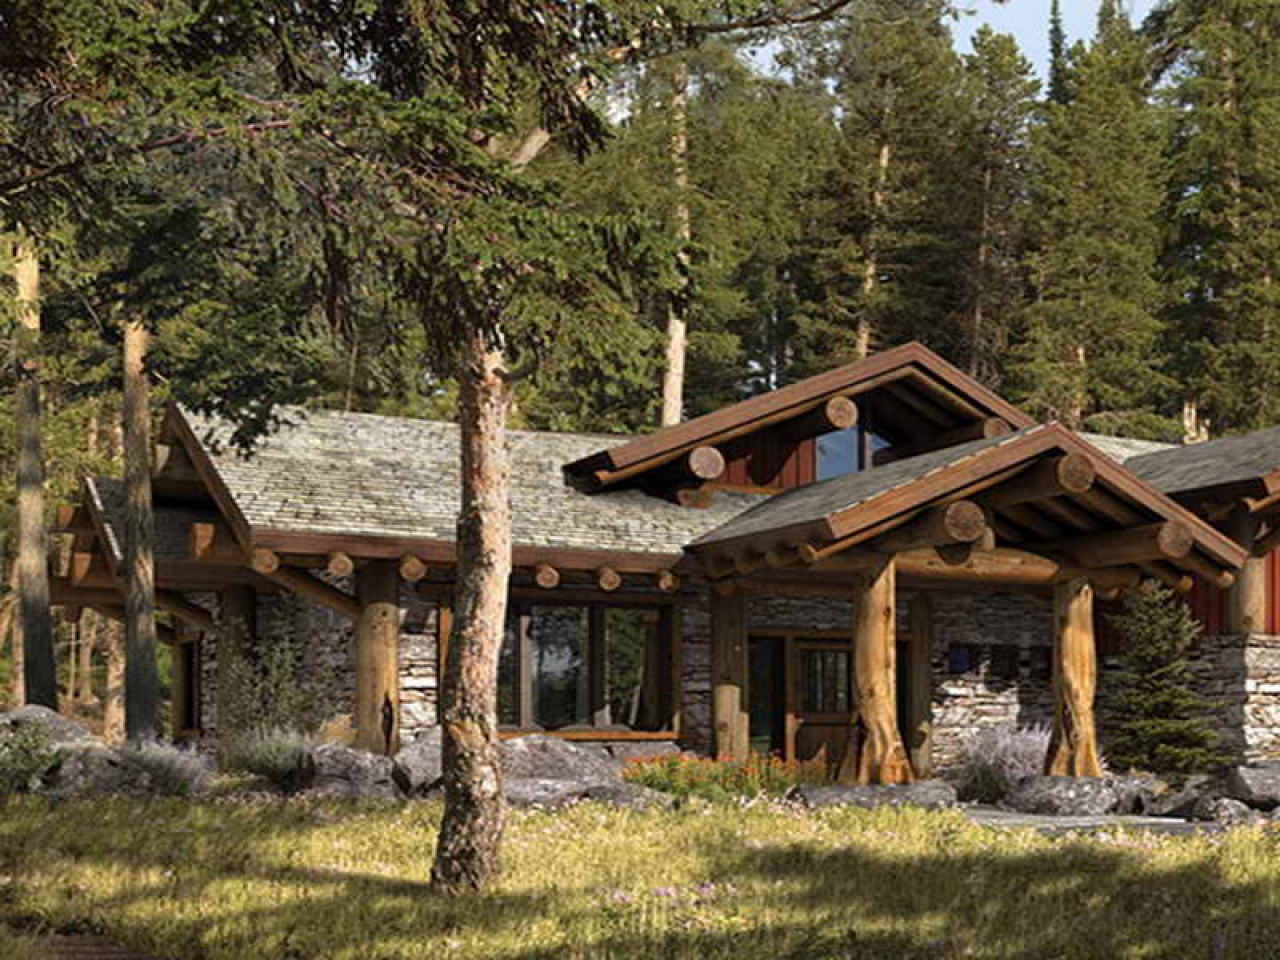 Rustic Mountain Homes Exterior Small Rustic Mountain Home ...